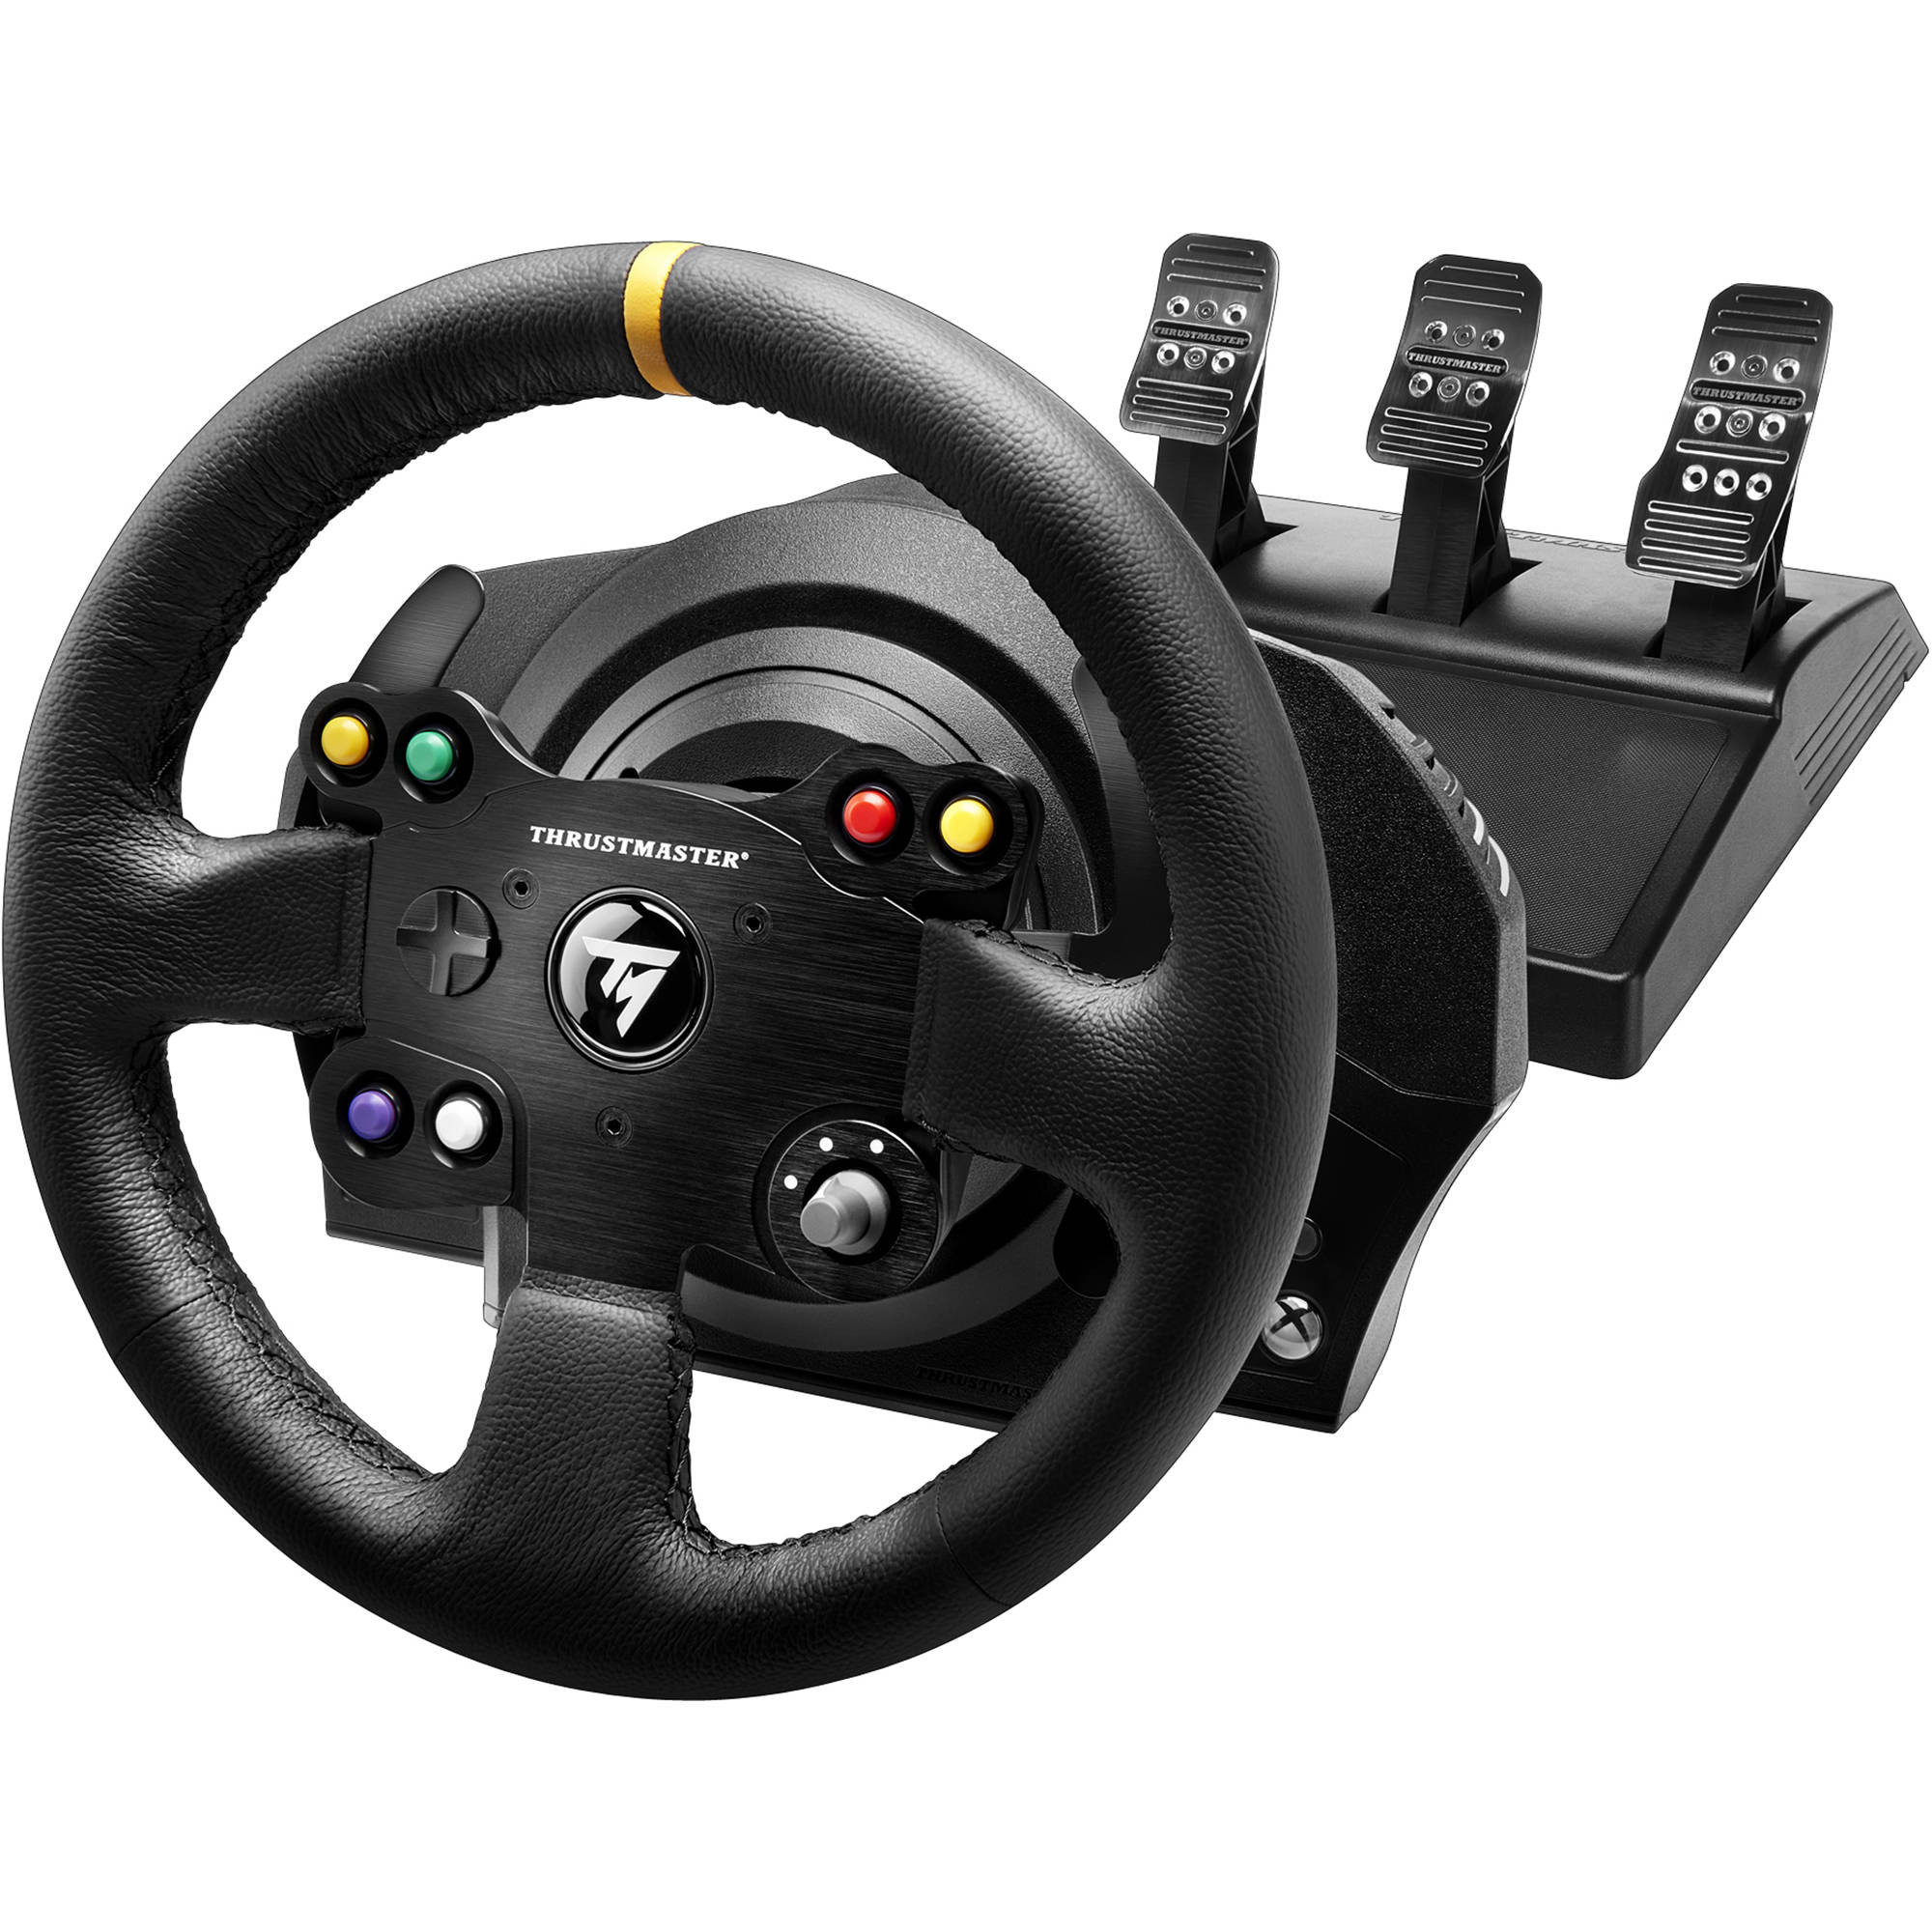 Thrustmaster TX Gaming Steering Wheel